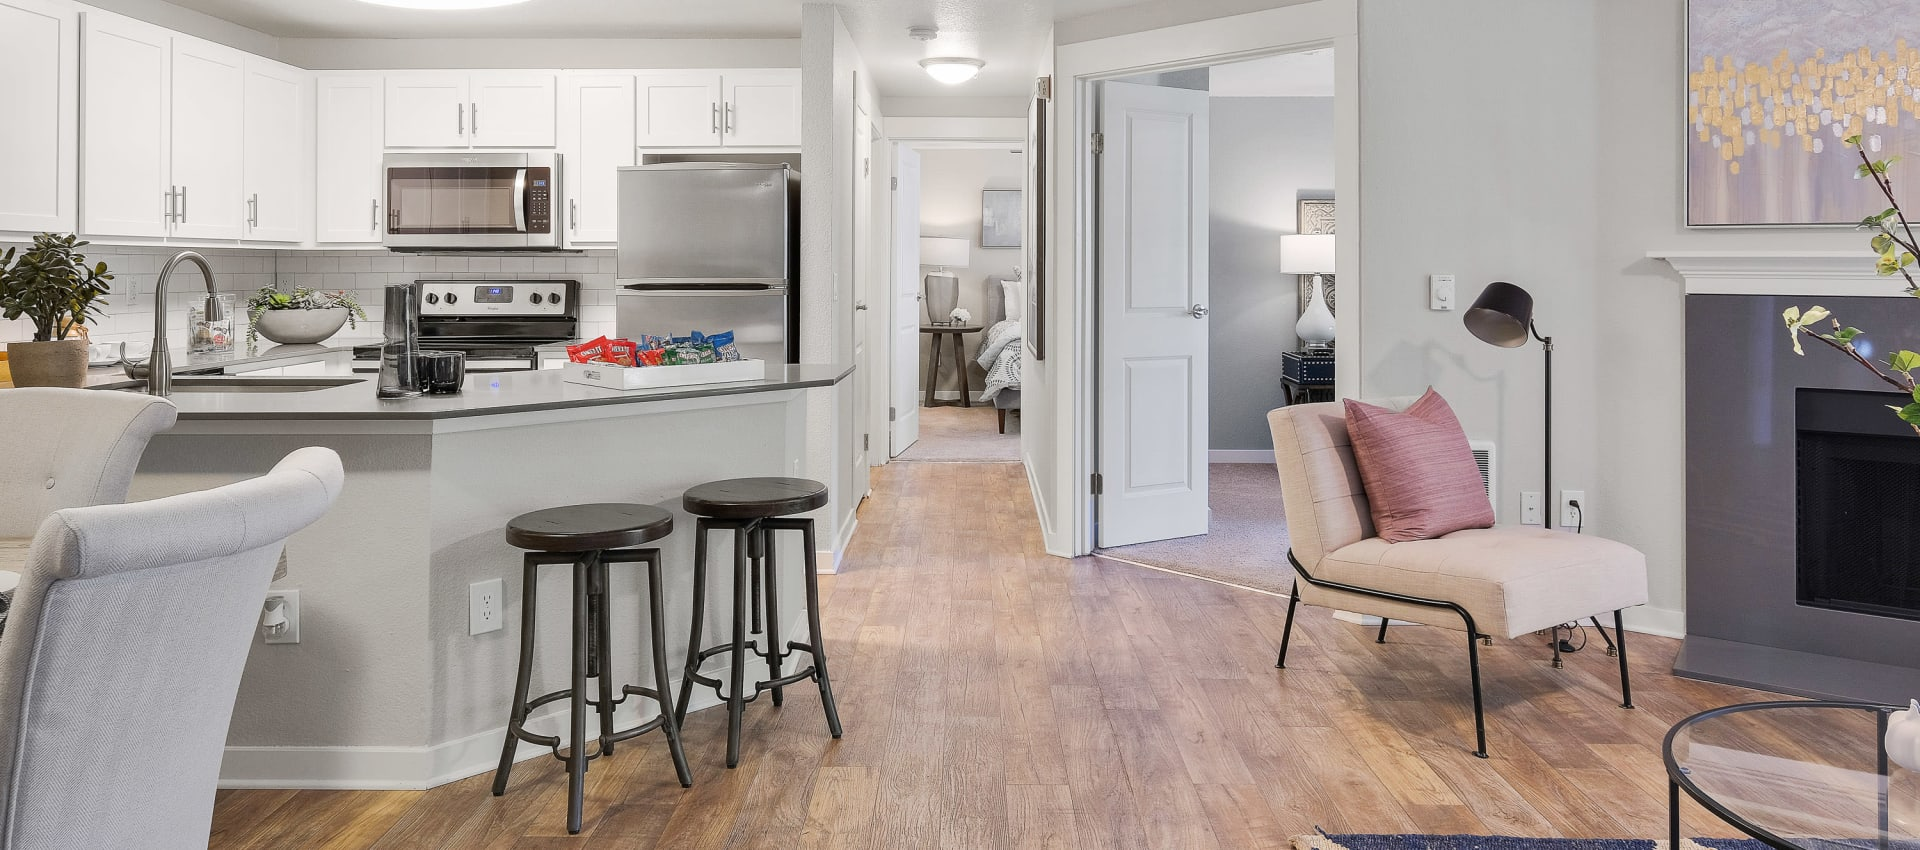 Spacious kitchen and living room at Centro Apartment Homes in Hillsboro, Oregon